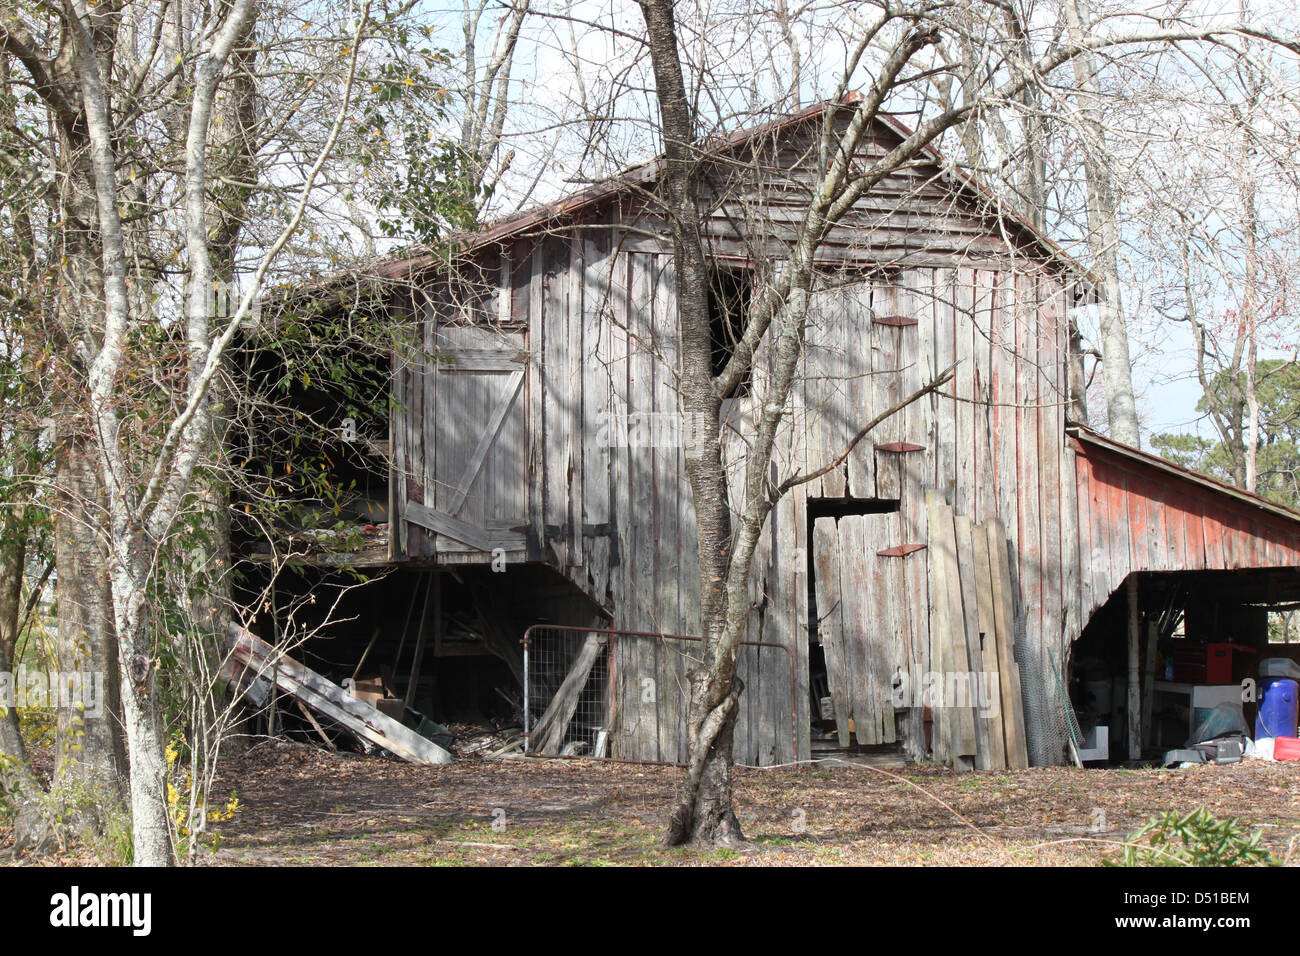 An old barn has seen better days. - Stock Image